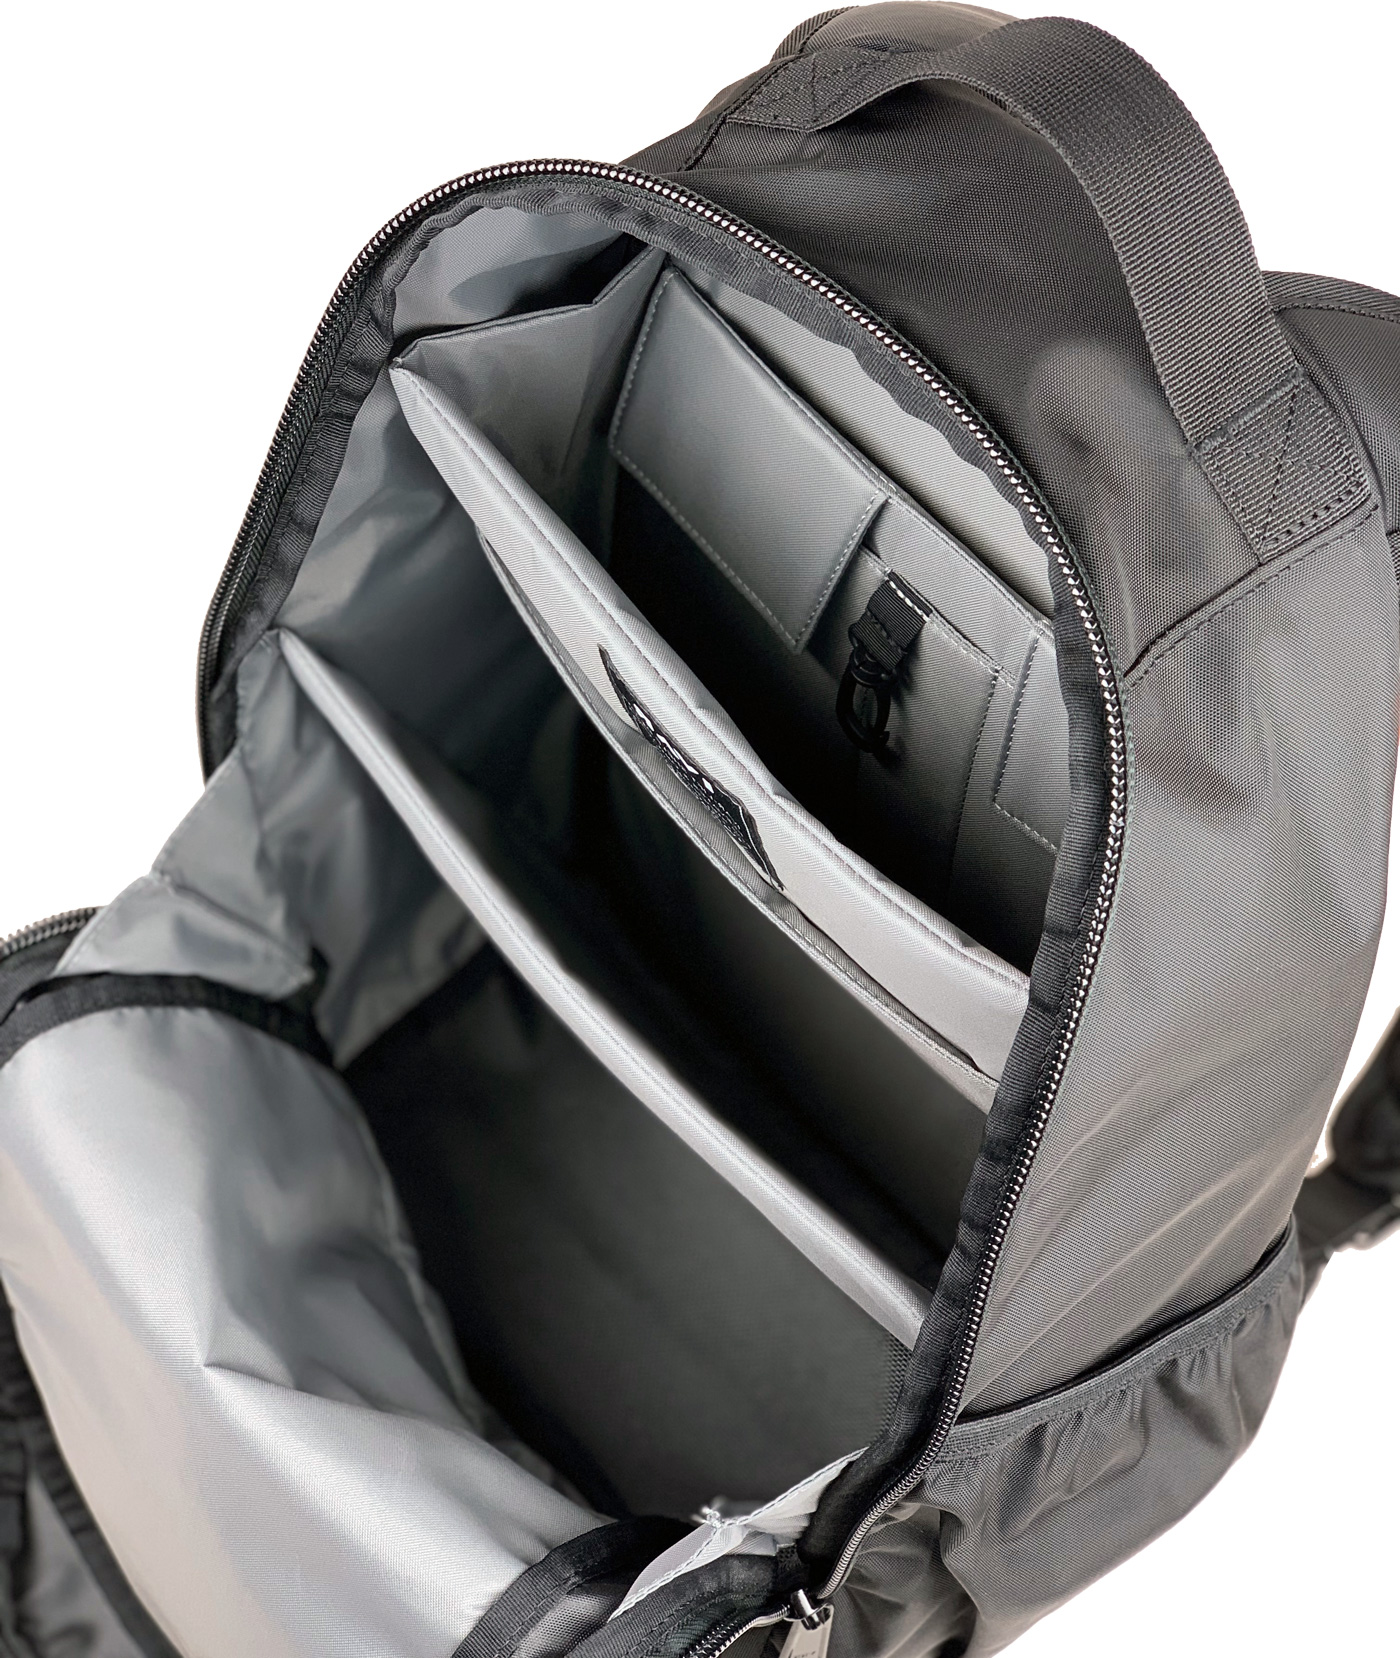 The BackpackReinvented - We've reimagined the traditional backpack with our patented file-like for superior organization, load balance and comfort.